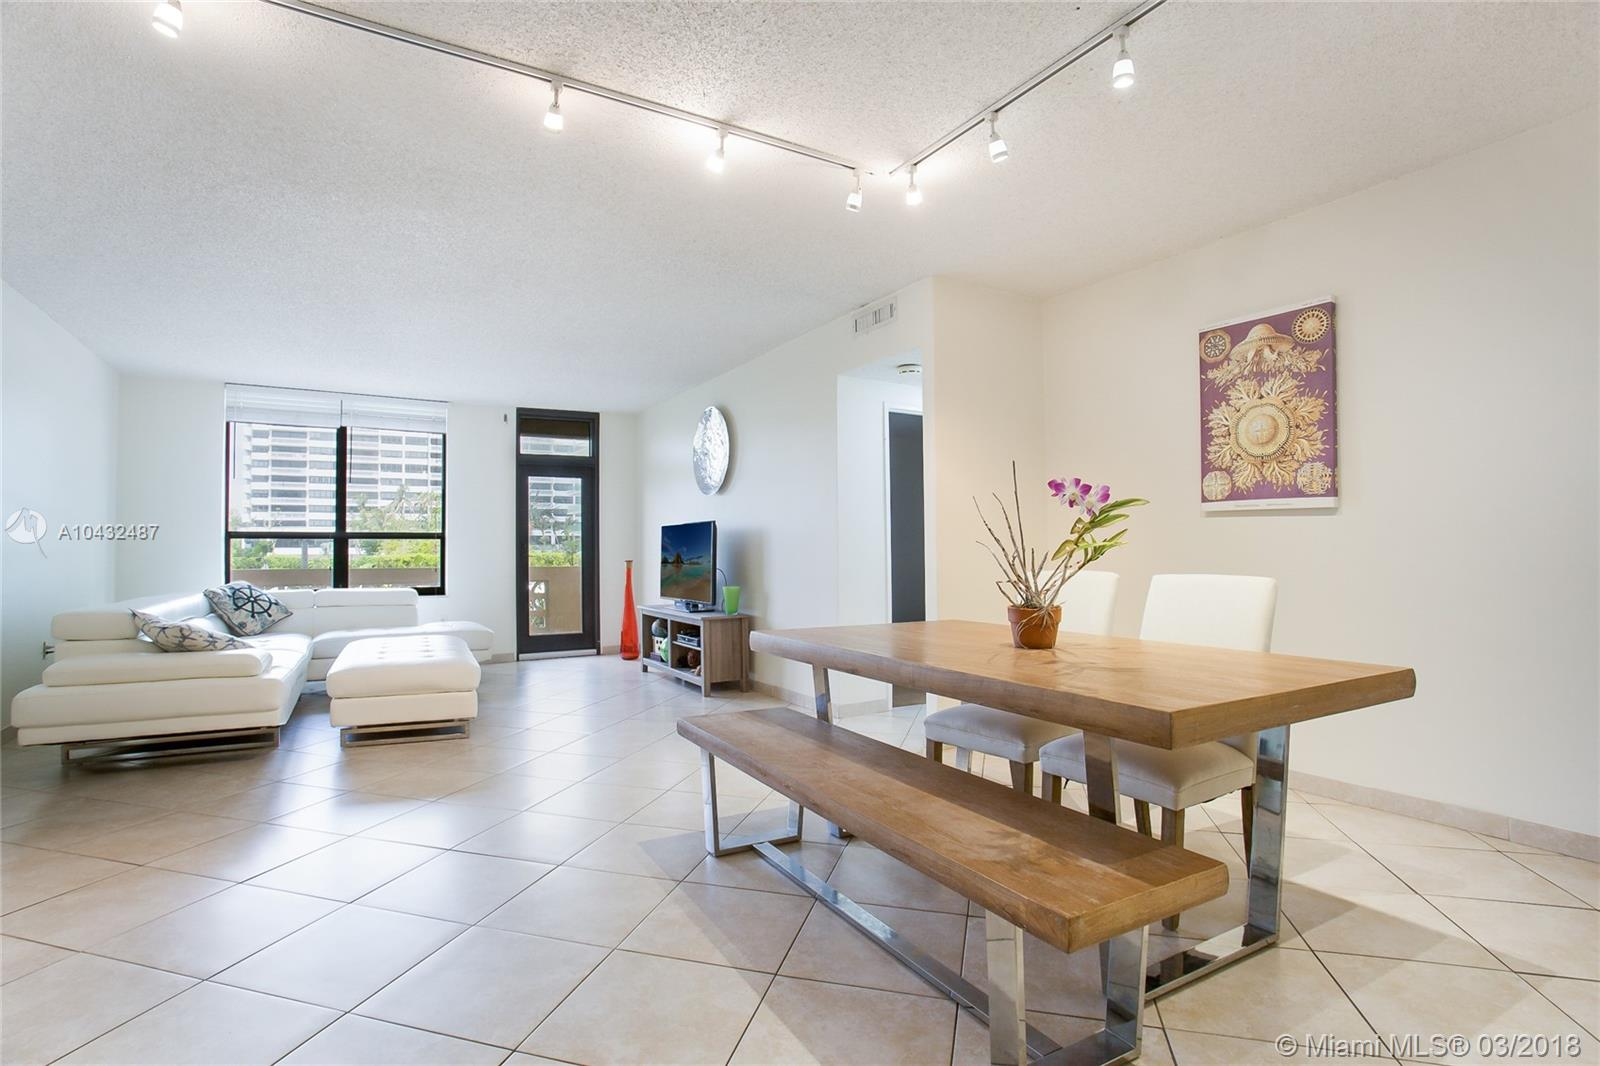 10185 Collins Ave # 202, Bal Harbour FL 33154